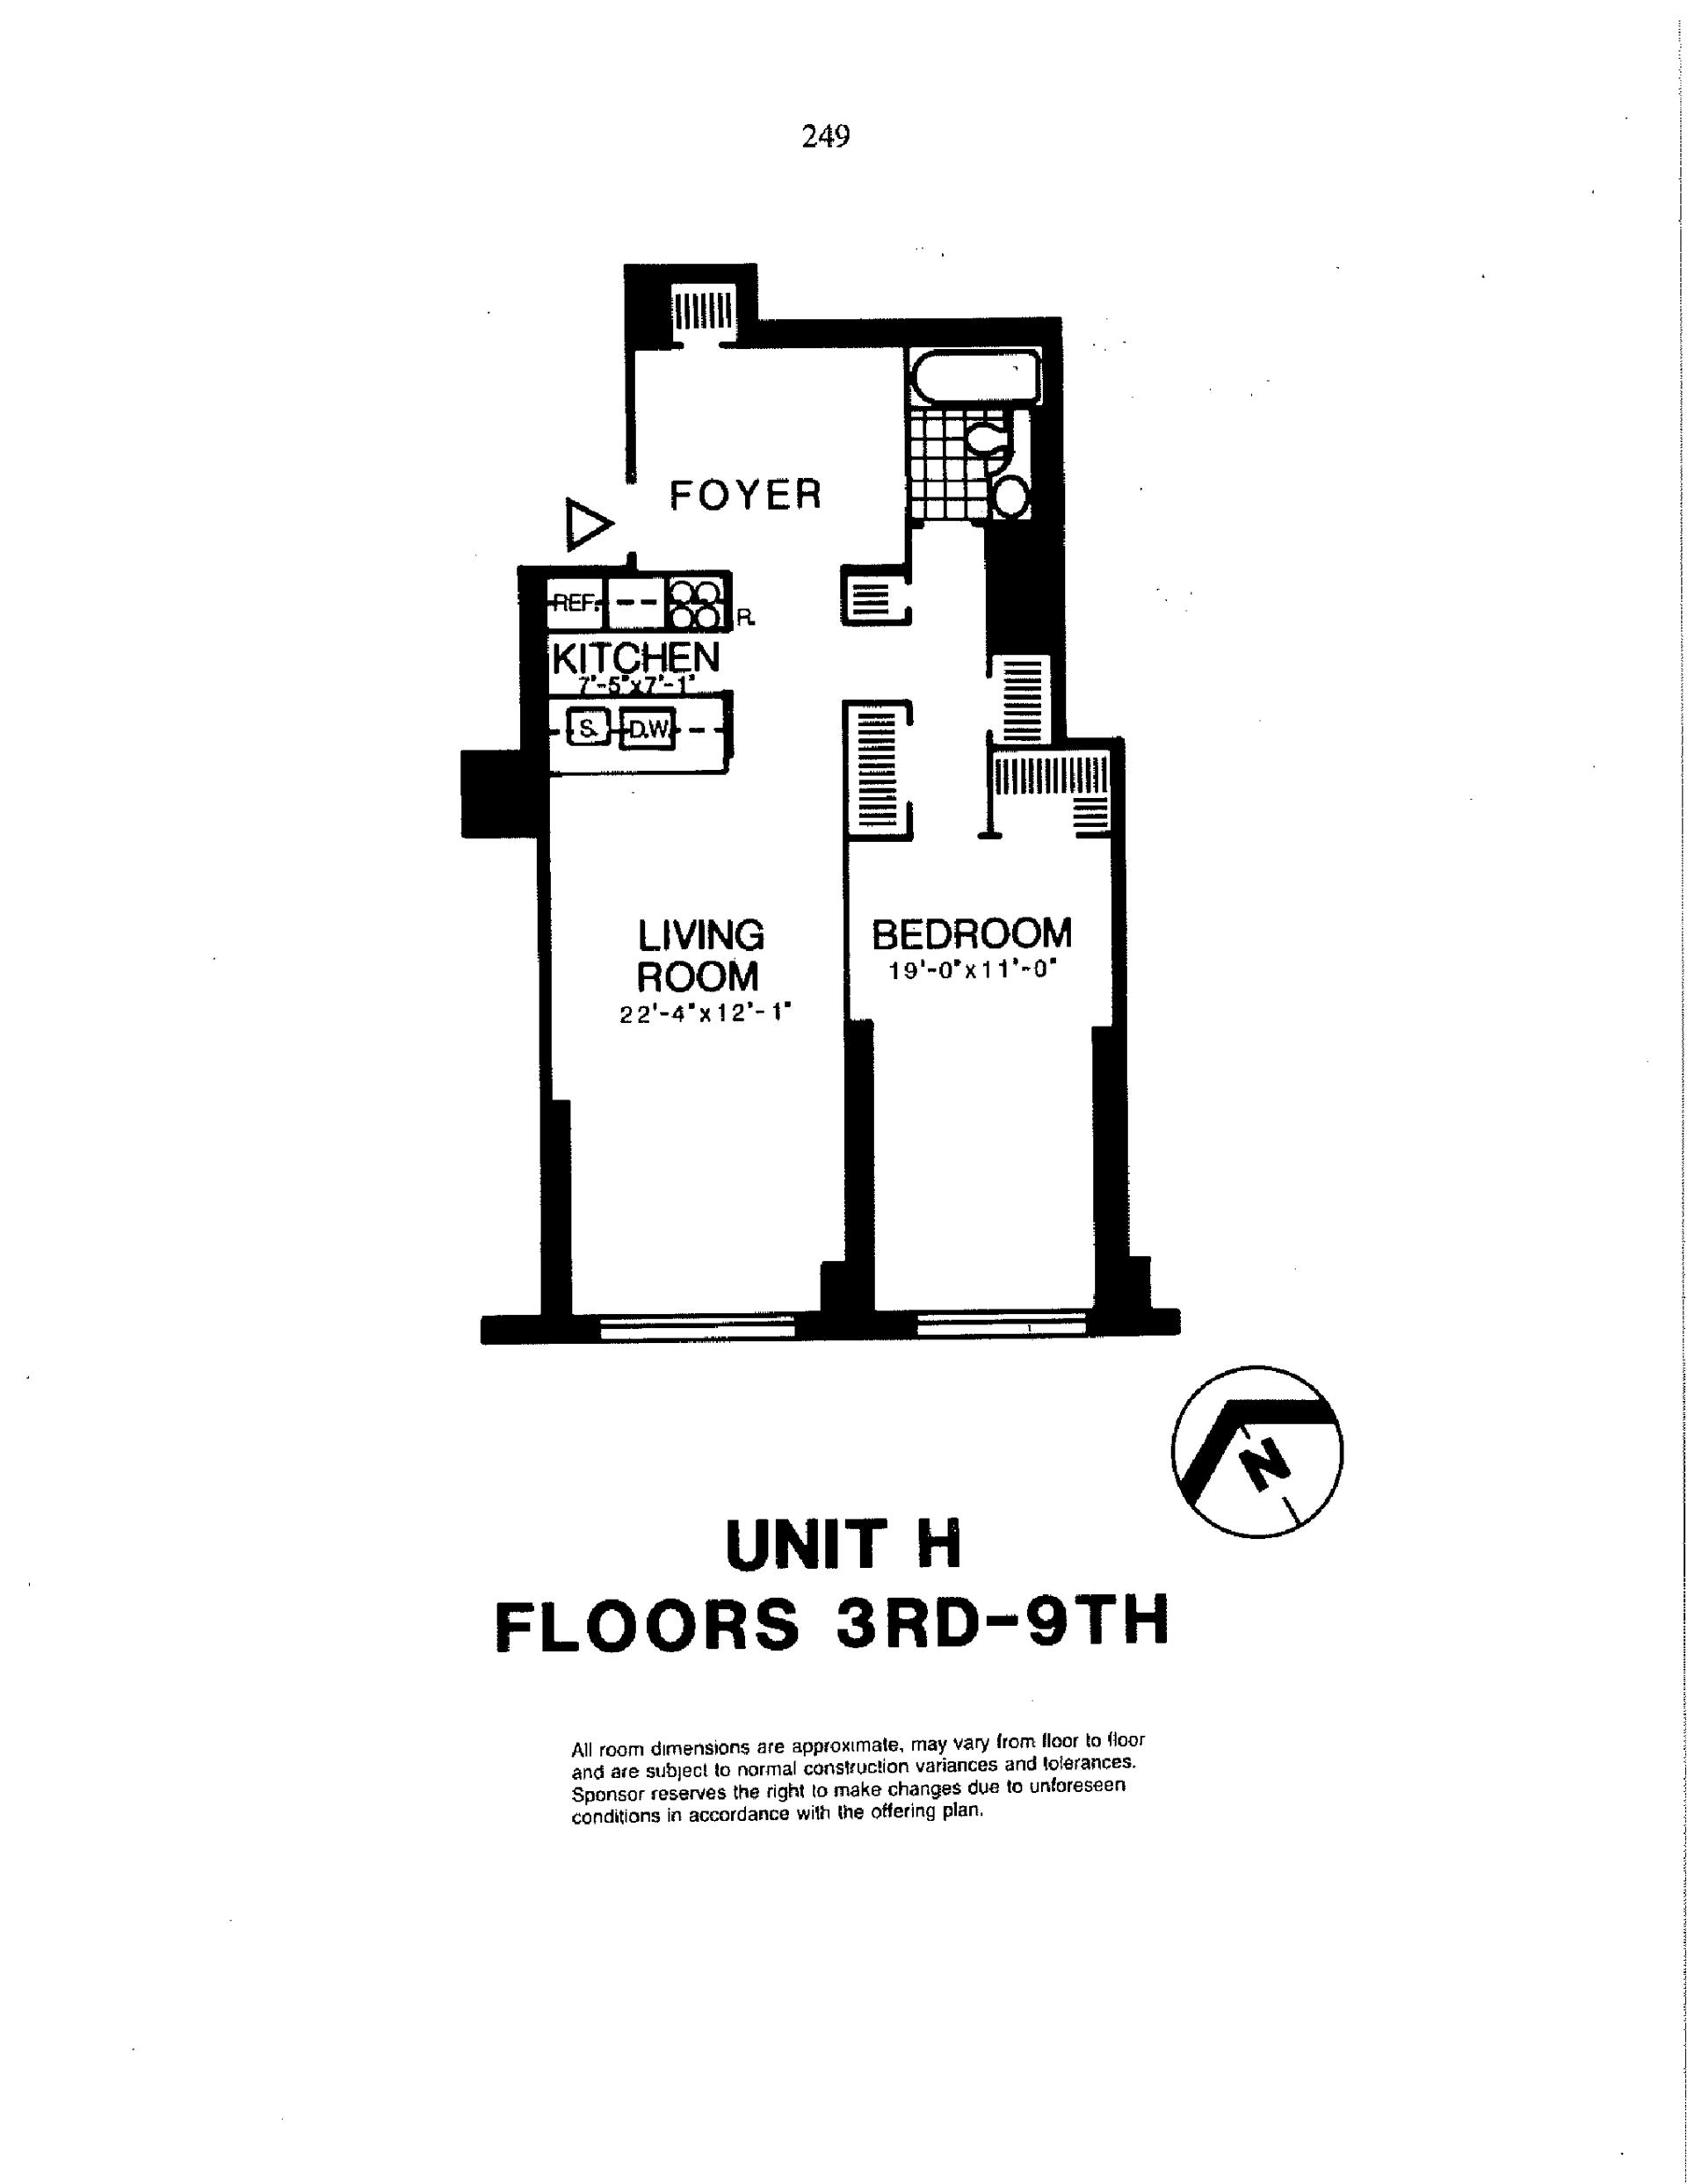 Floor plan of Liberty Residences, 200 Rector Pl, 6H - Battery Park City, New York